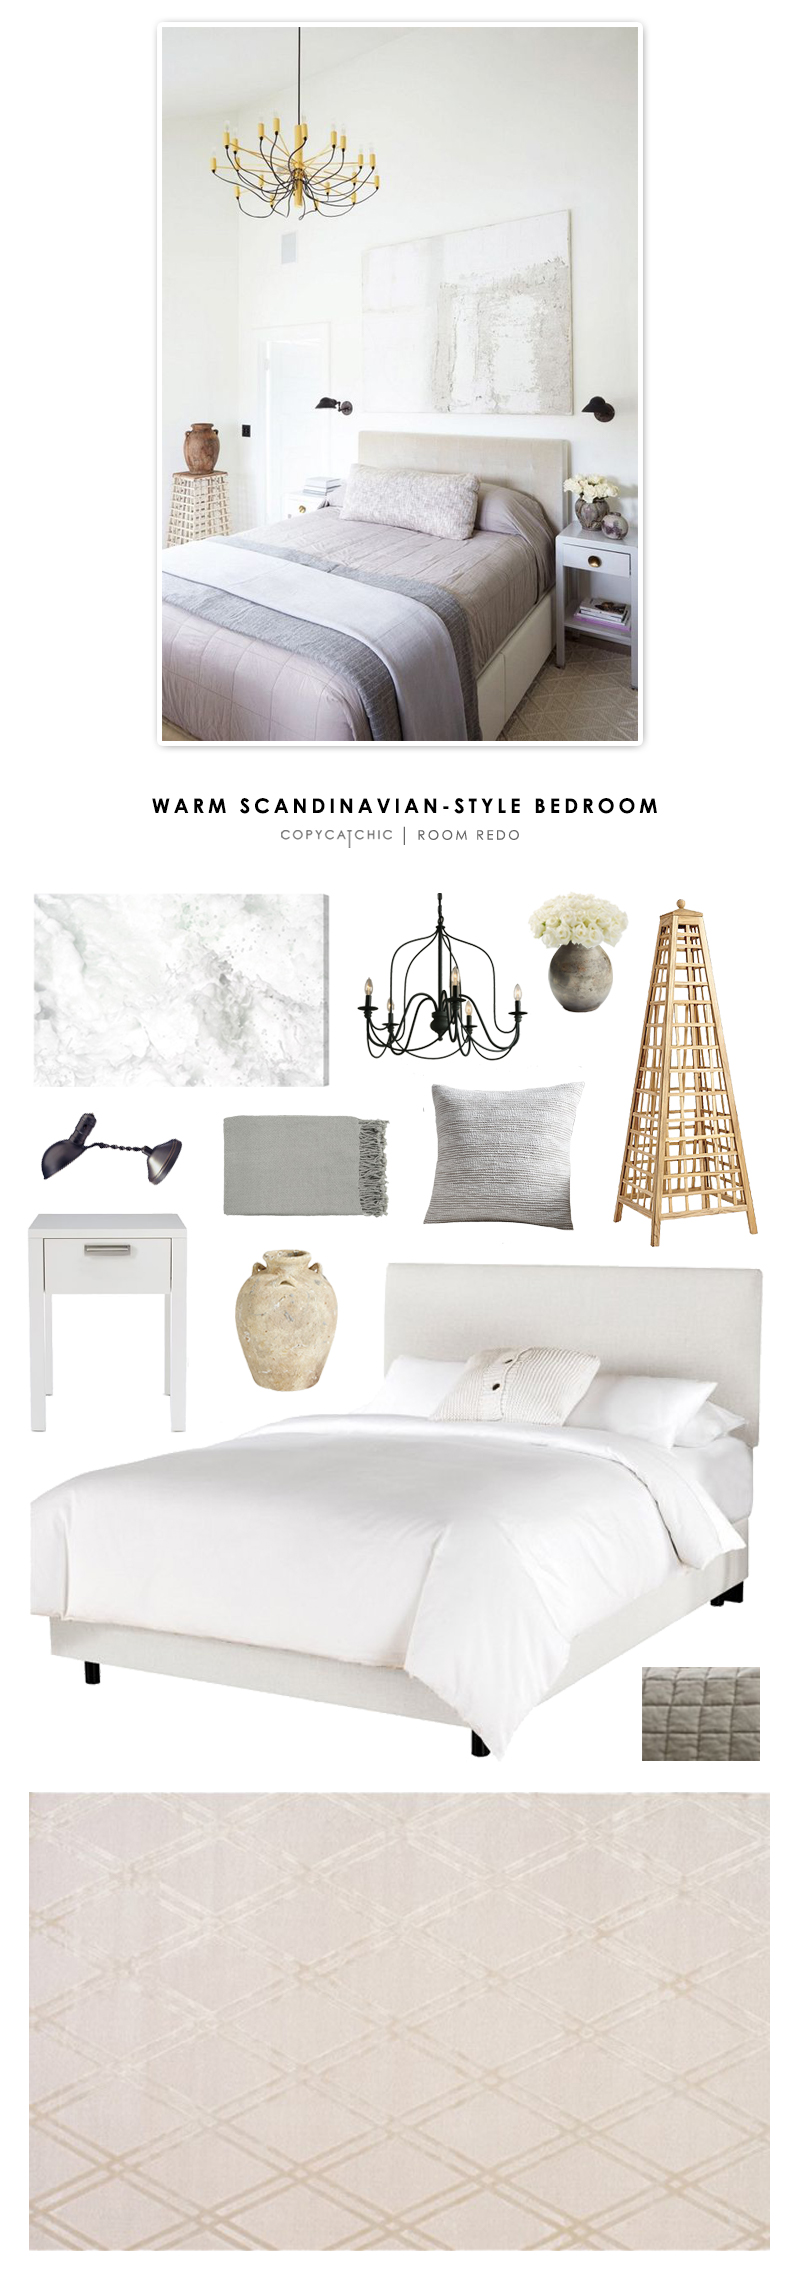 A warm Scandinavian contemporary bedroom featured in Lonny Magazine and recreated for less by @copycatchic | Room Redo looks for less budget home decor